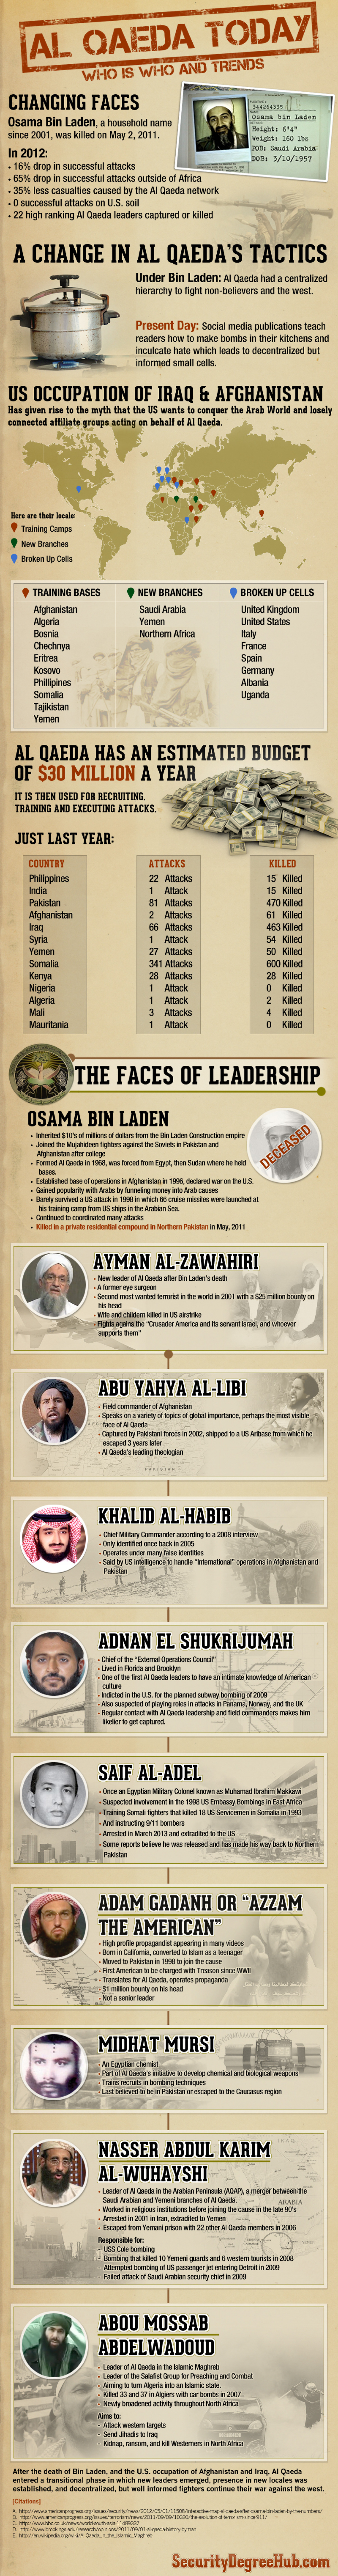 Al-Qaeda in numbers Infographic